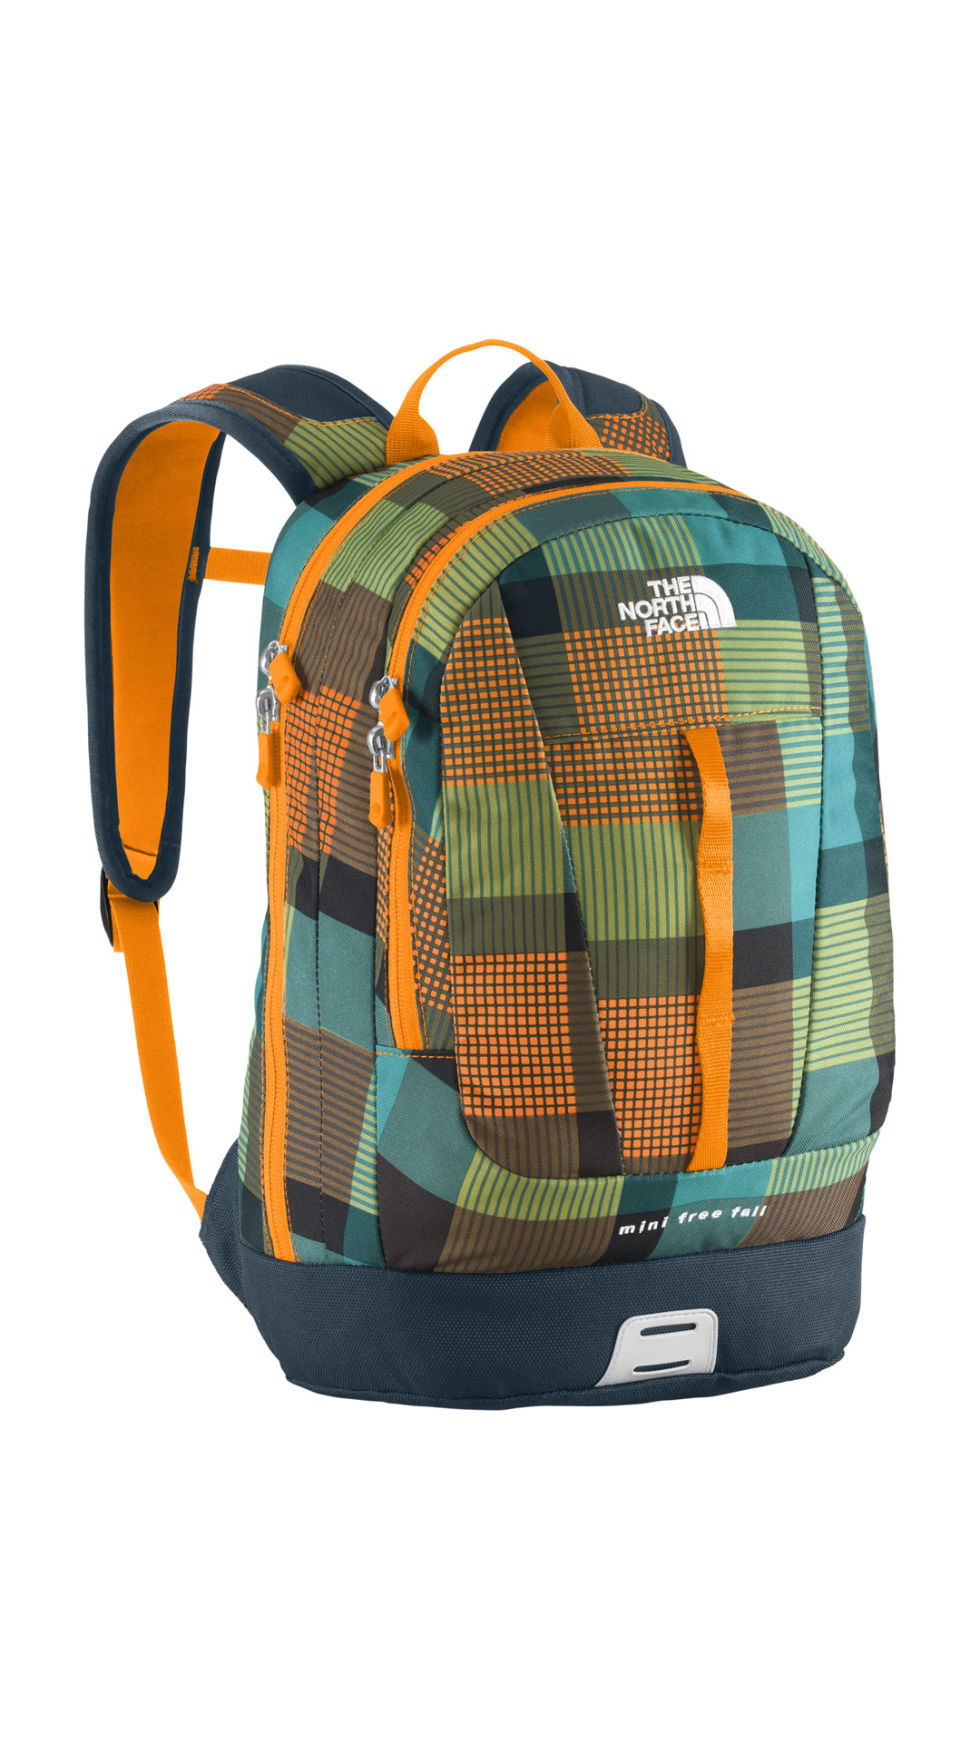 Best Backpacks For Kindergarteners EKtfiW4w